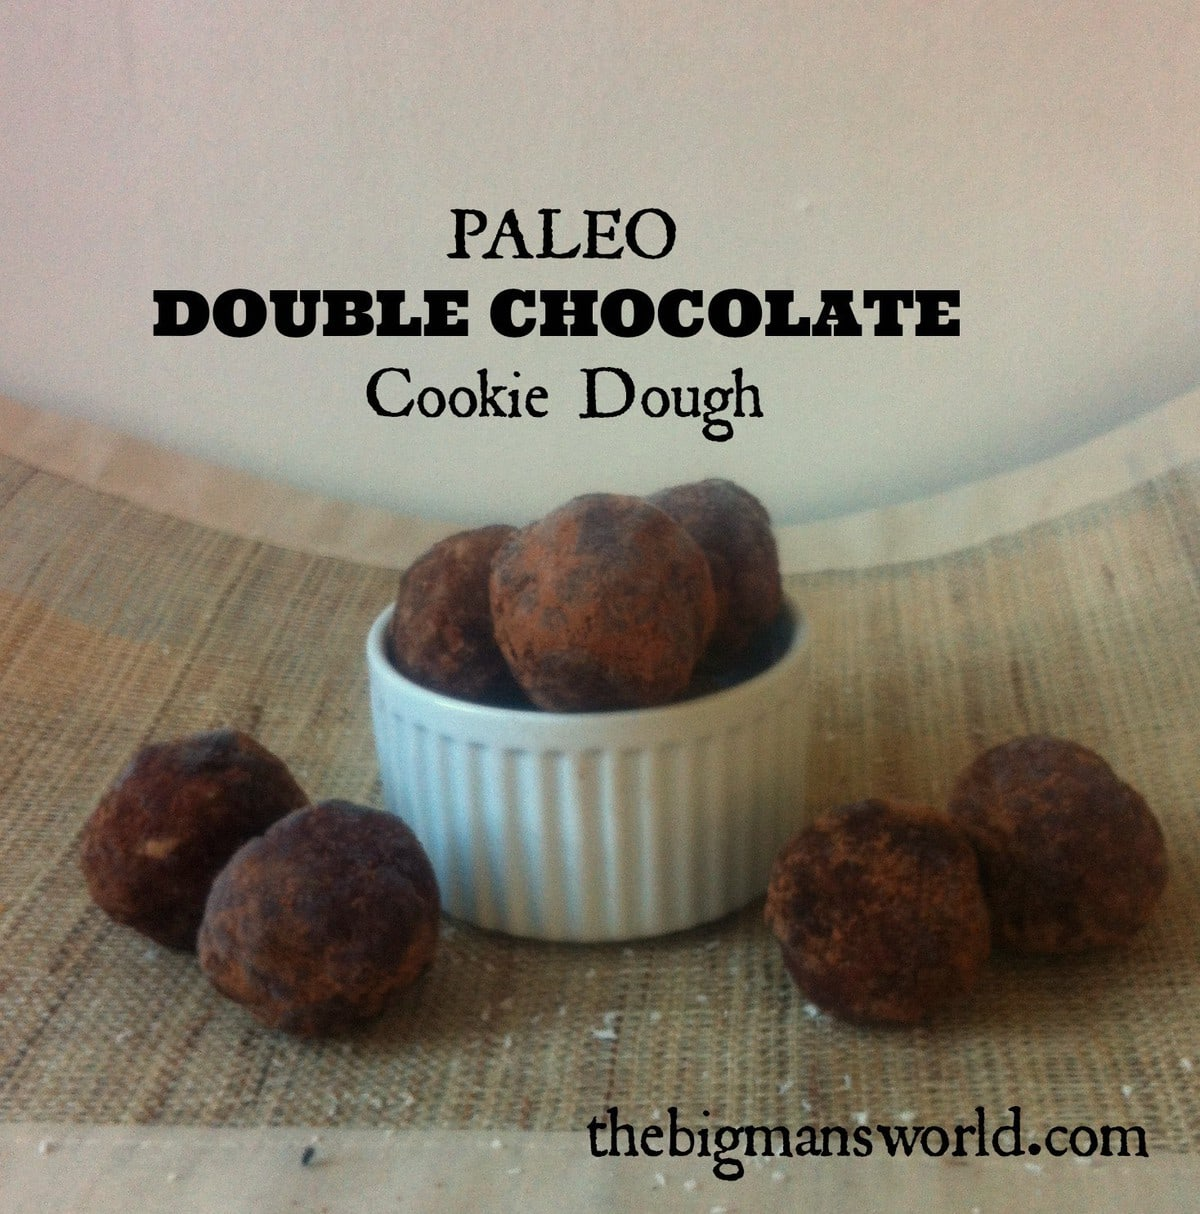 Paleo Double Chocolate Cookie Dough (Based off my Paleo Cookie Dough )